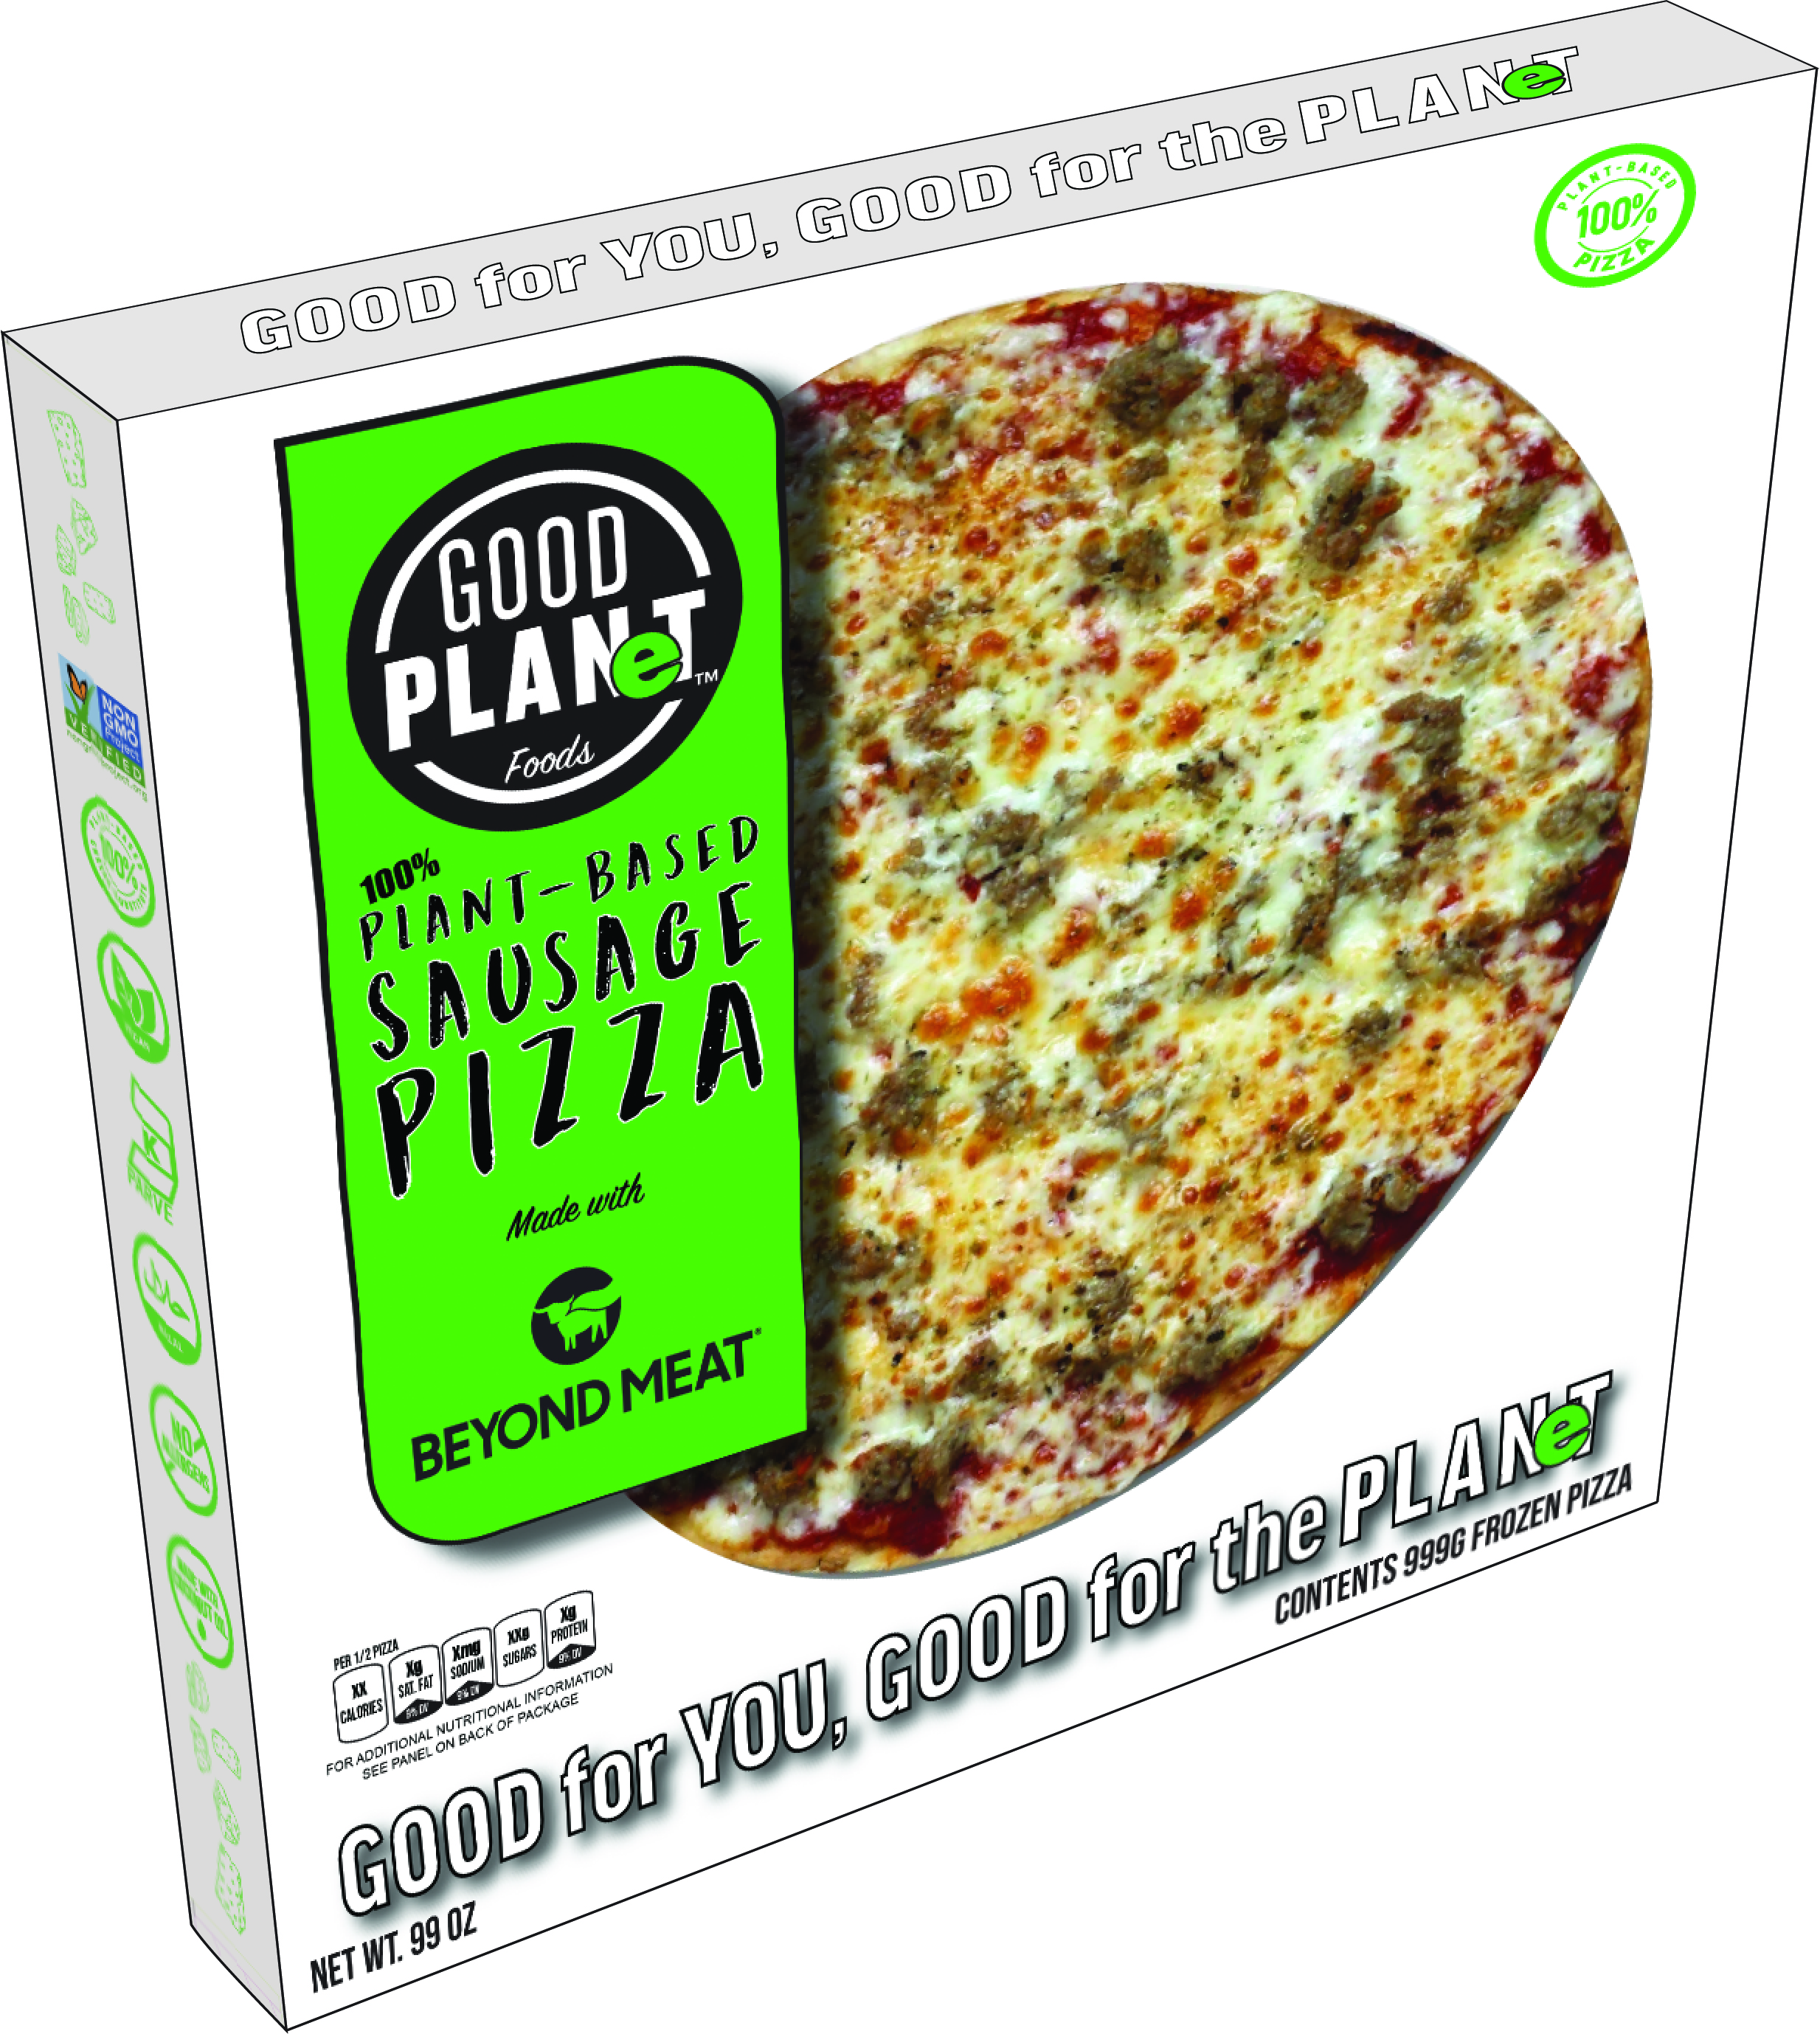 GOOD PLANeT Introduces Plant-Based Frozen Pizza Featuring Beyond Meat